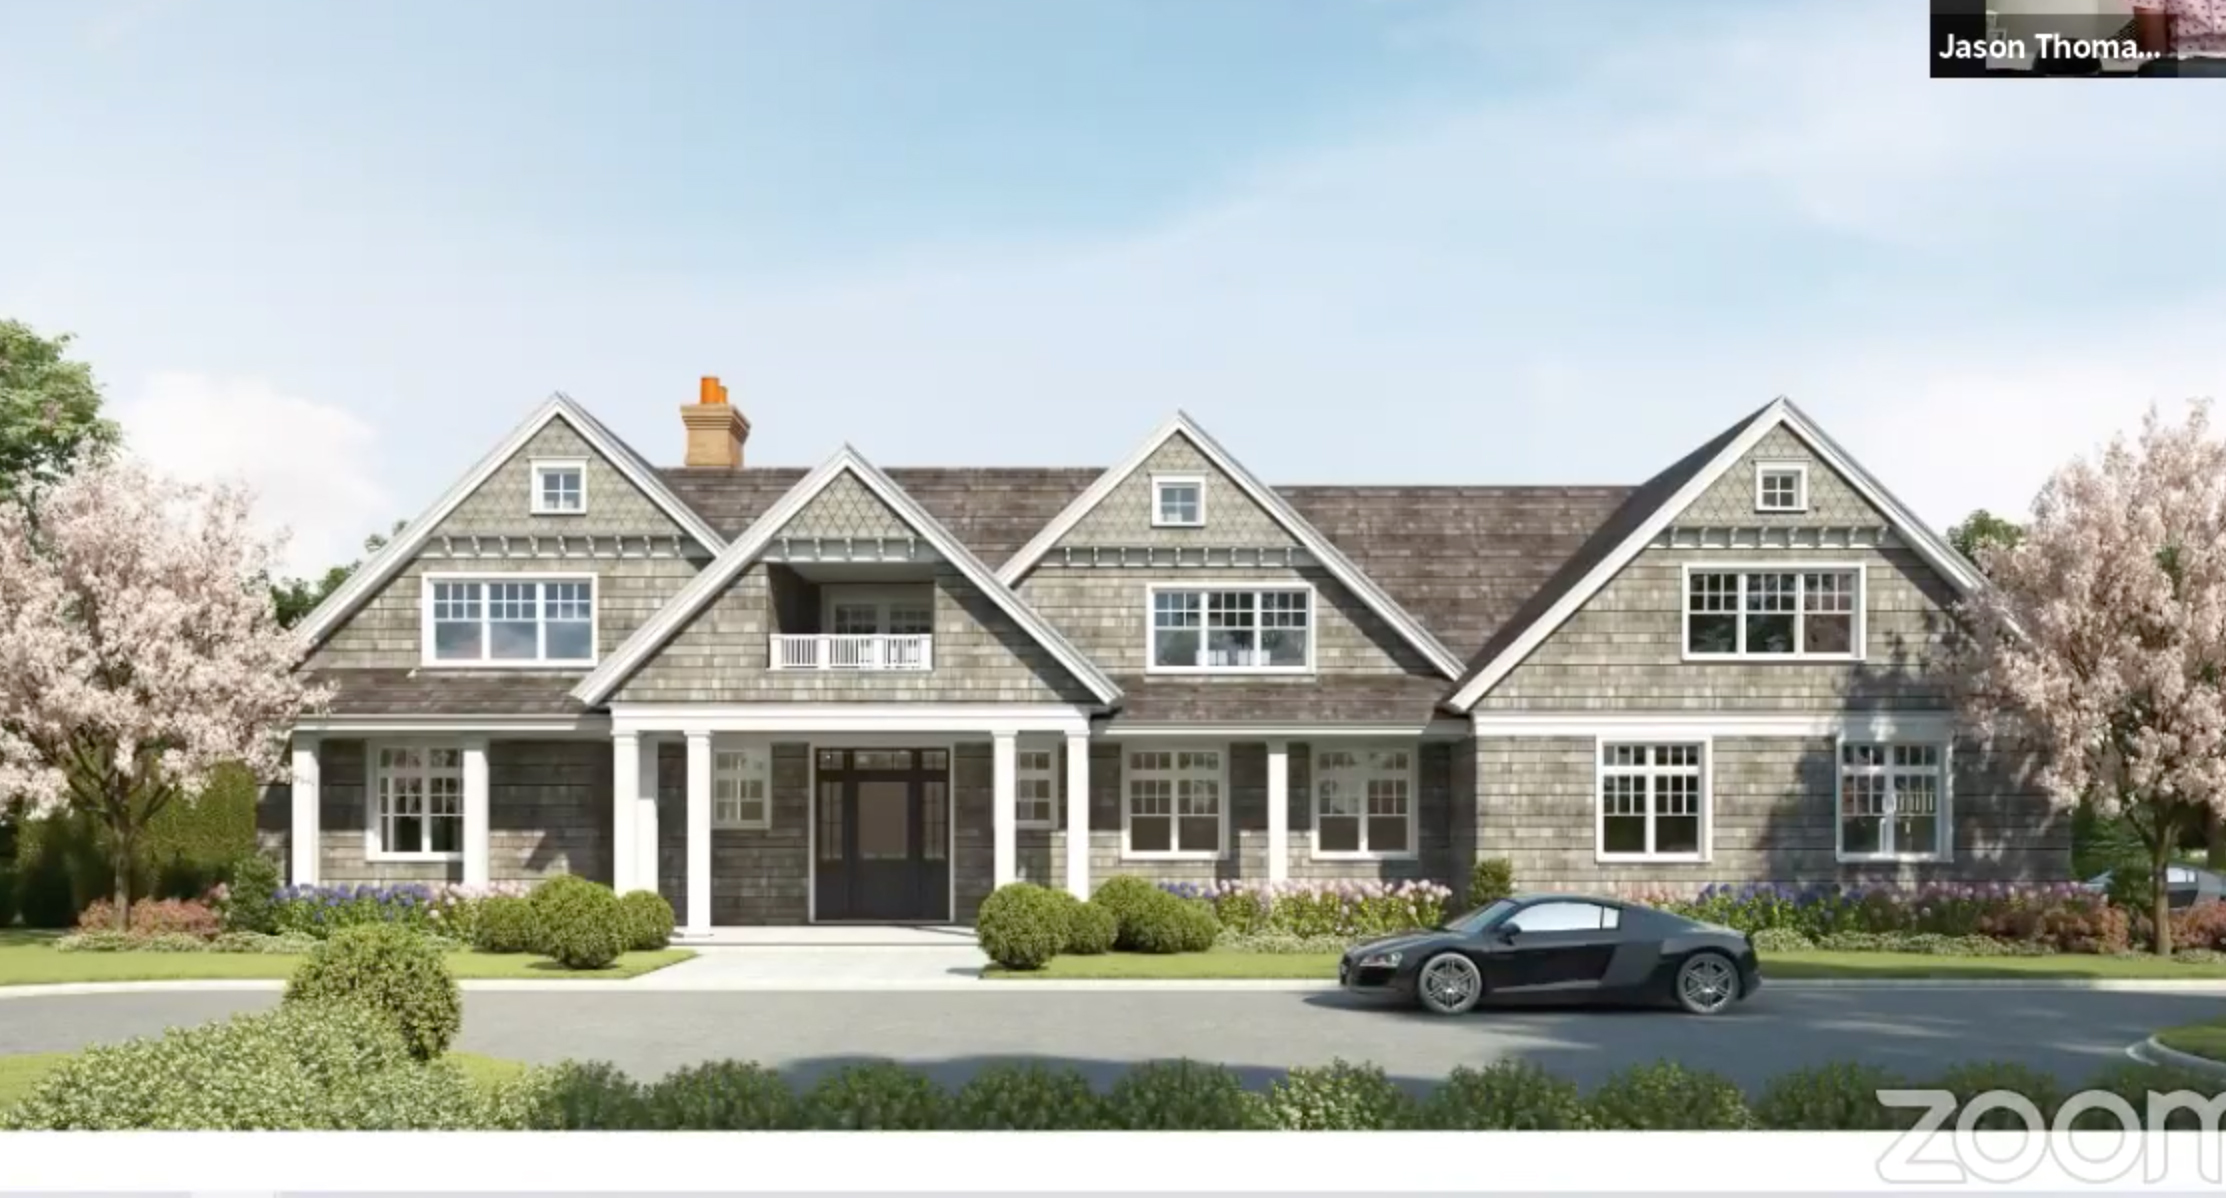 Architect Jason Poremba presented plans for 354 Madison Street to the Sag Harbor Village Board of Historic Preservation and Architectural Review on July 23.